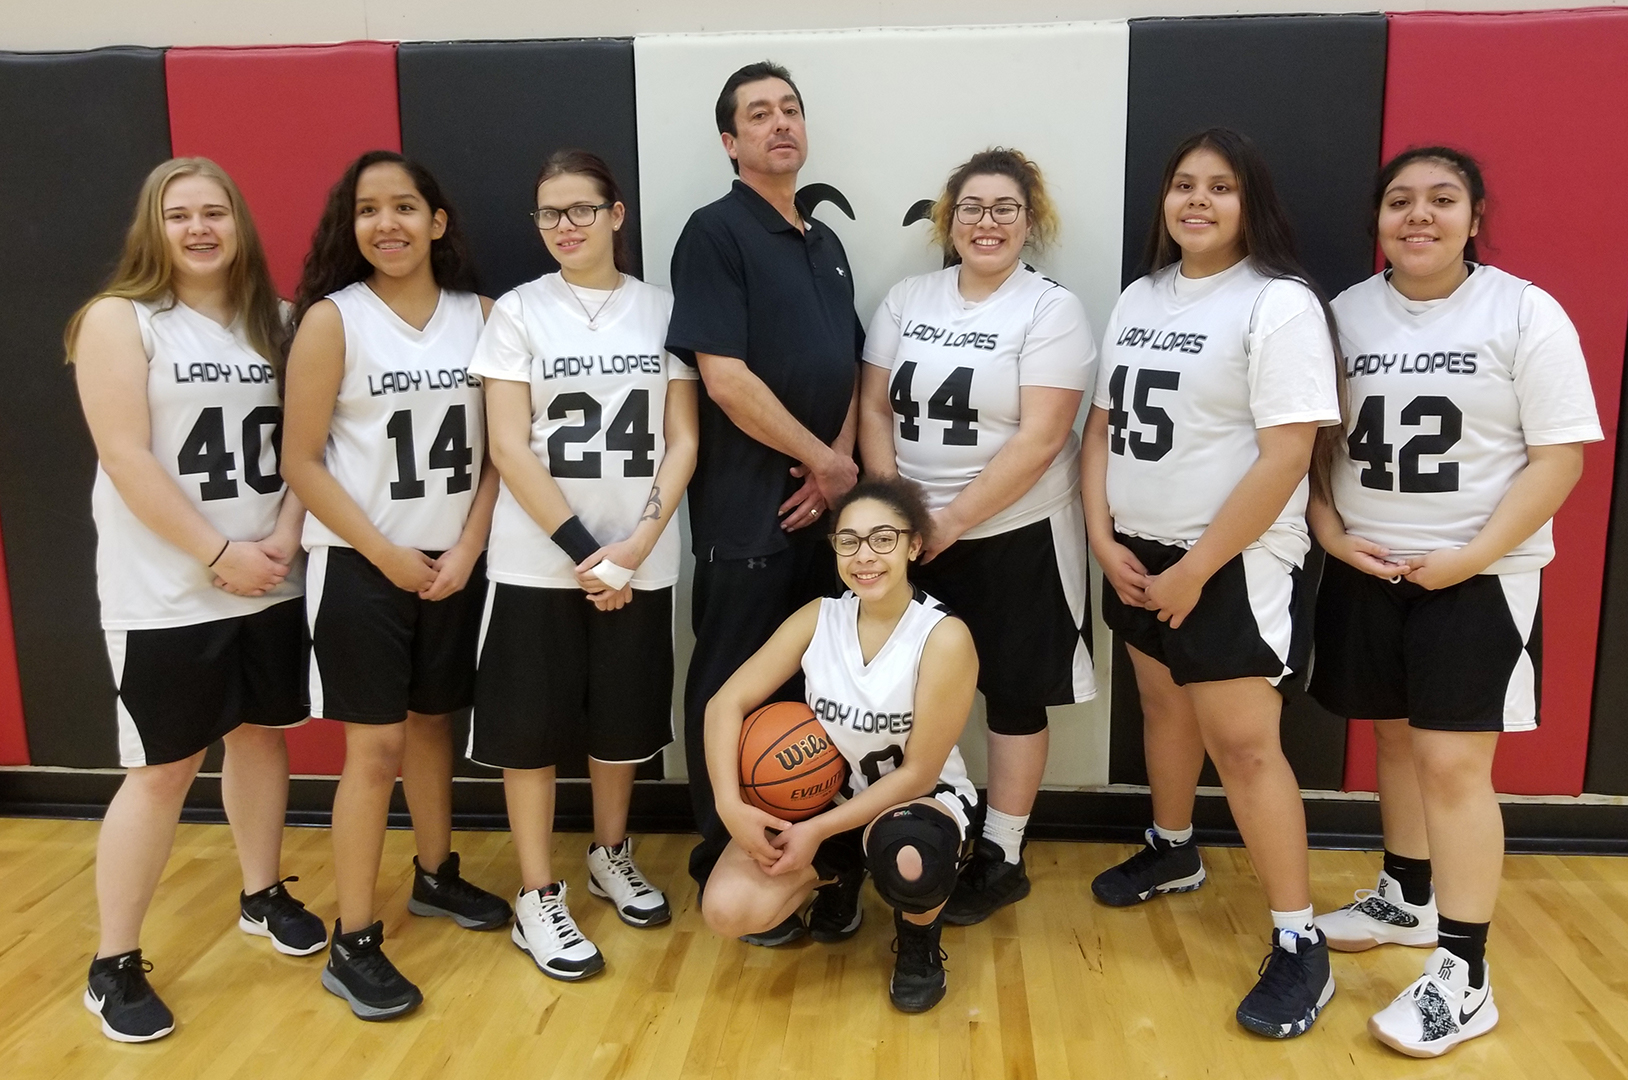 High School Girls Basketball Team